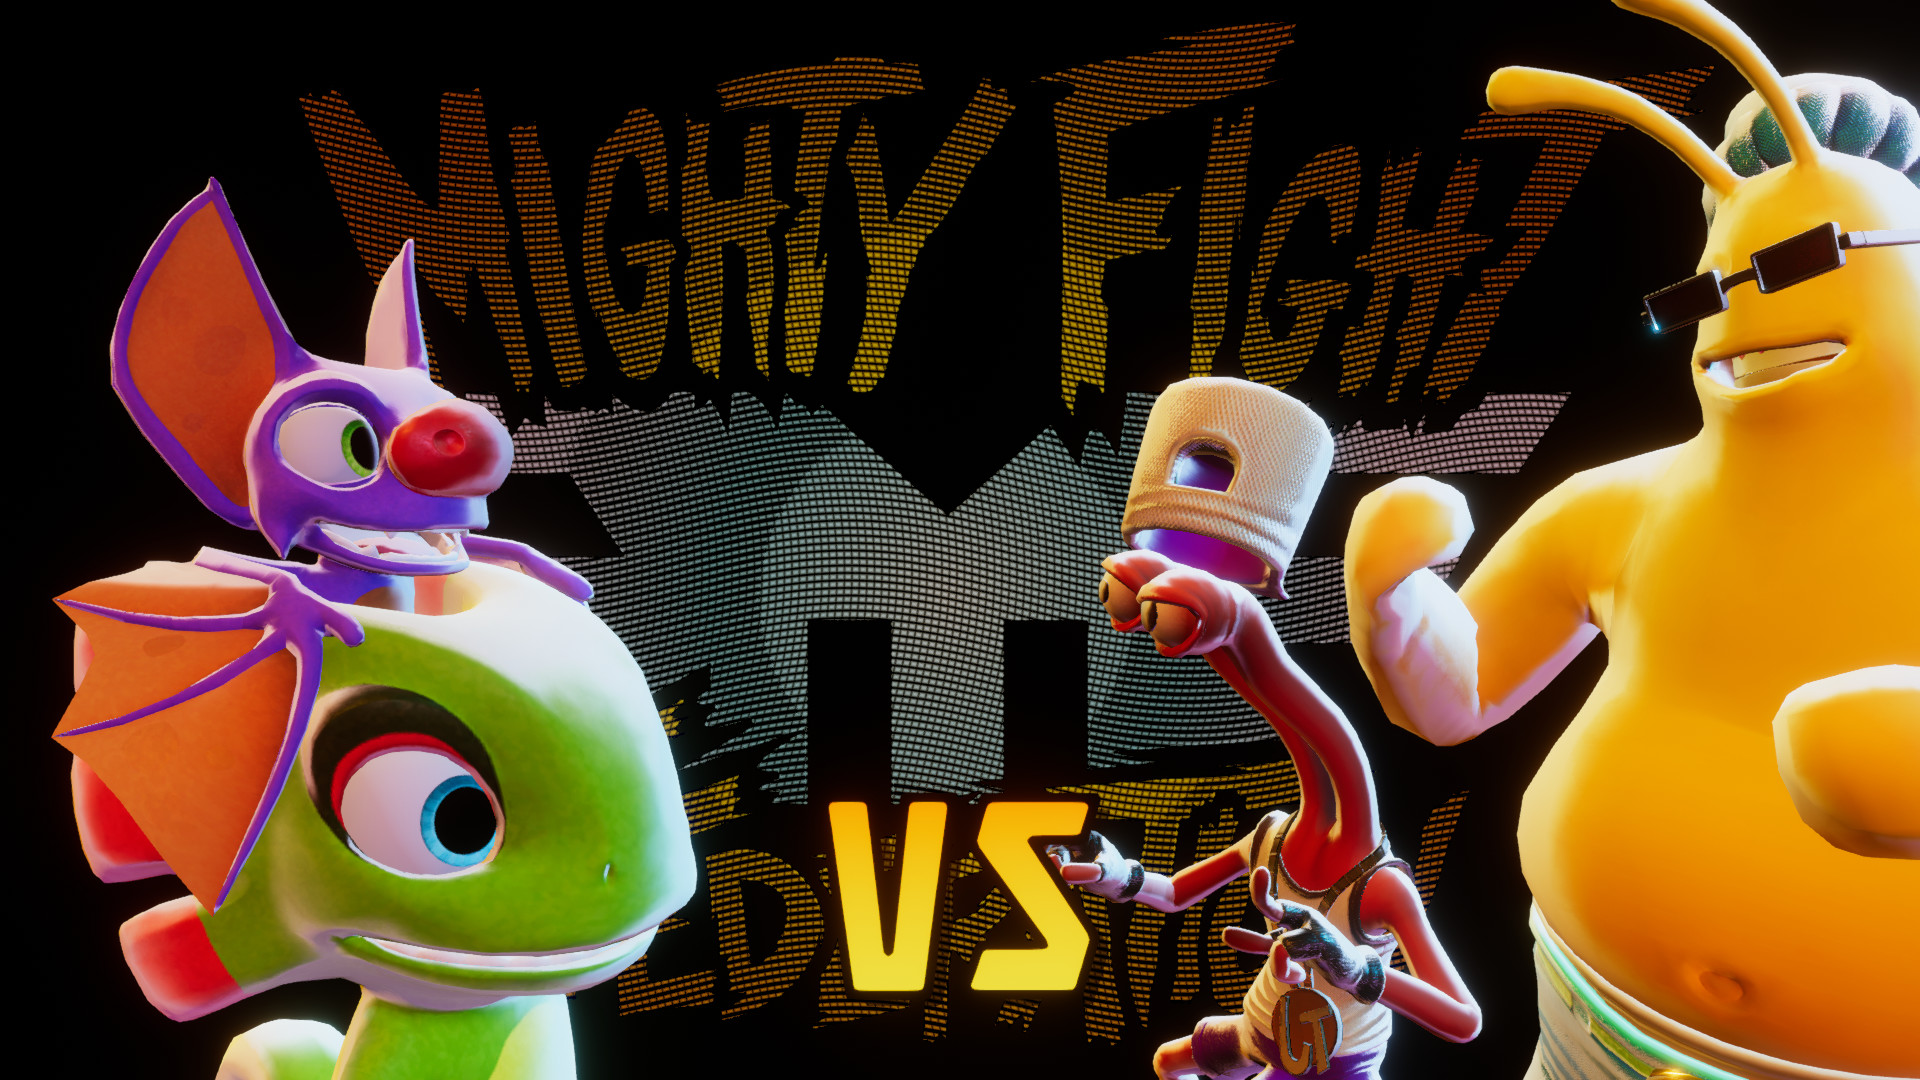 mighty fight federation pictures wallpaper 73791